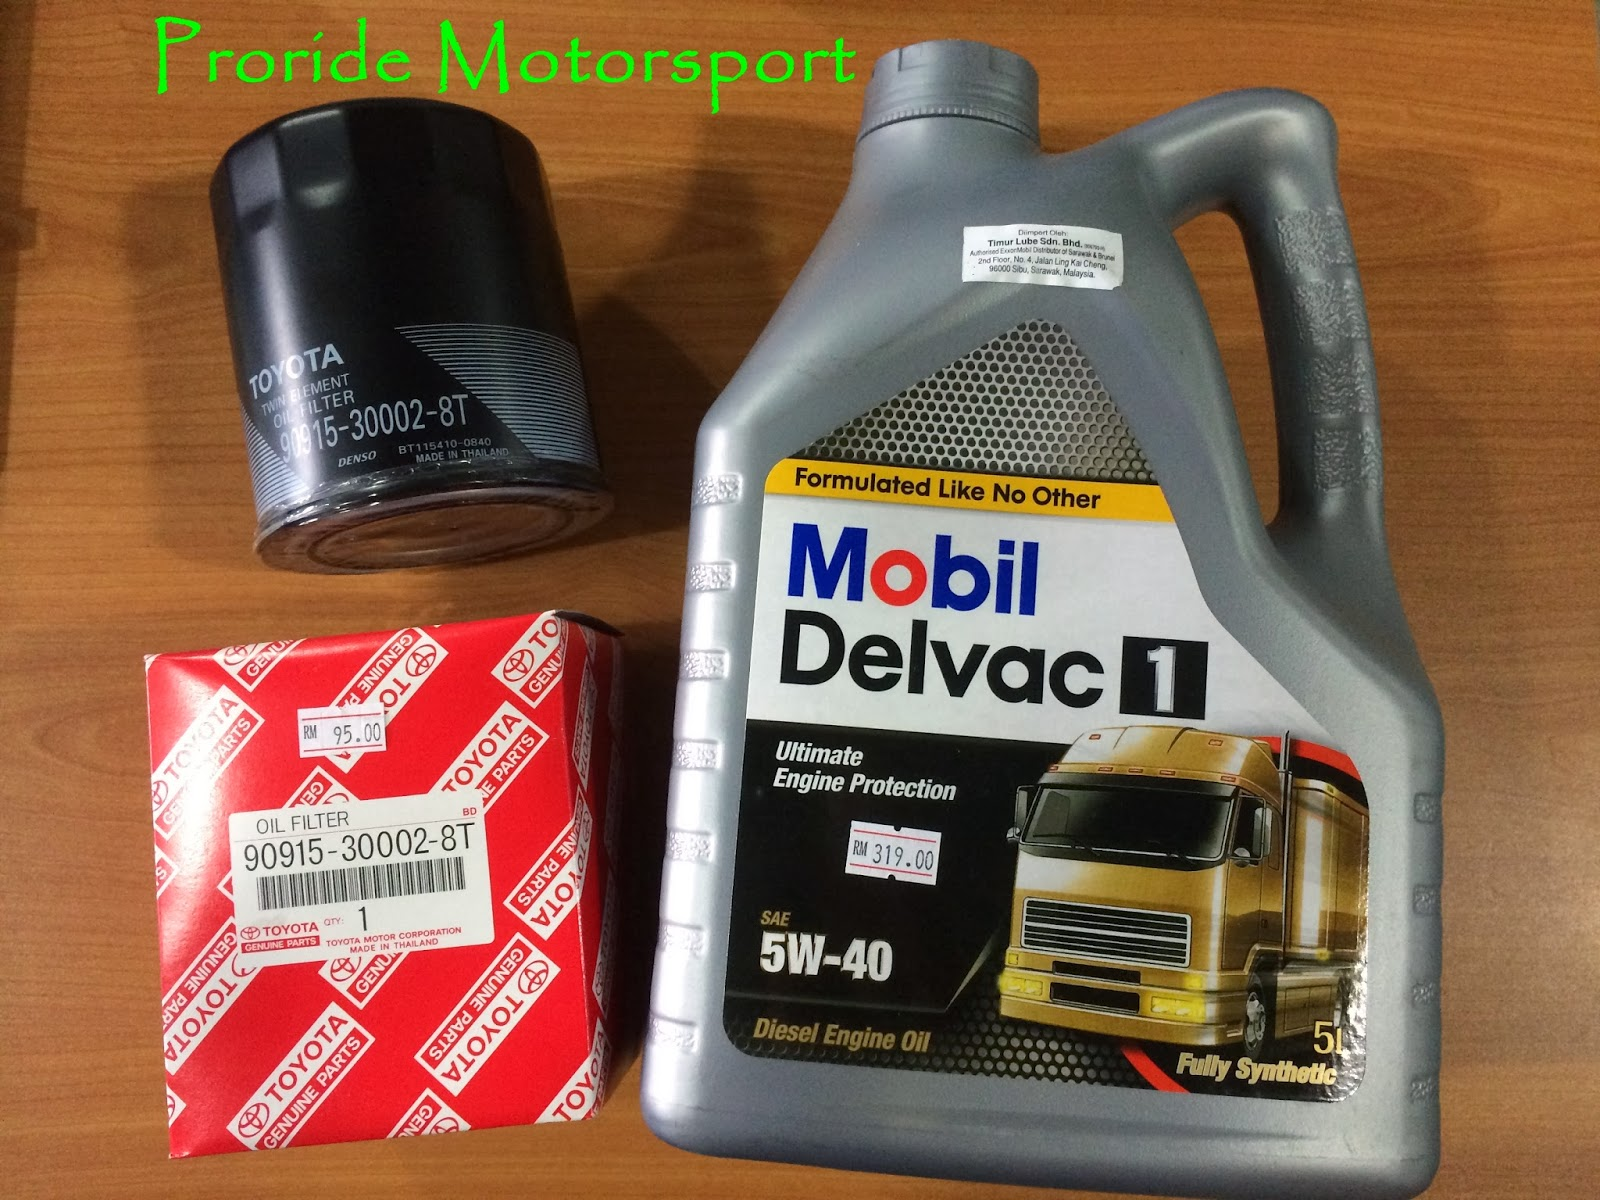 Mobil Delvac 1 & Toyota Genuine Oil Filter | Pro-ride Motorsports